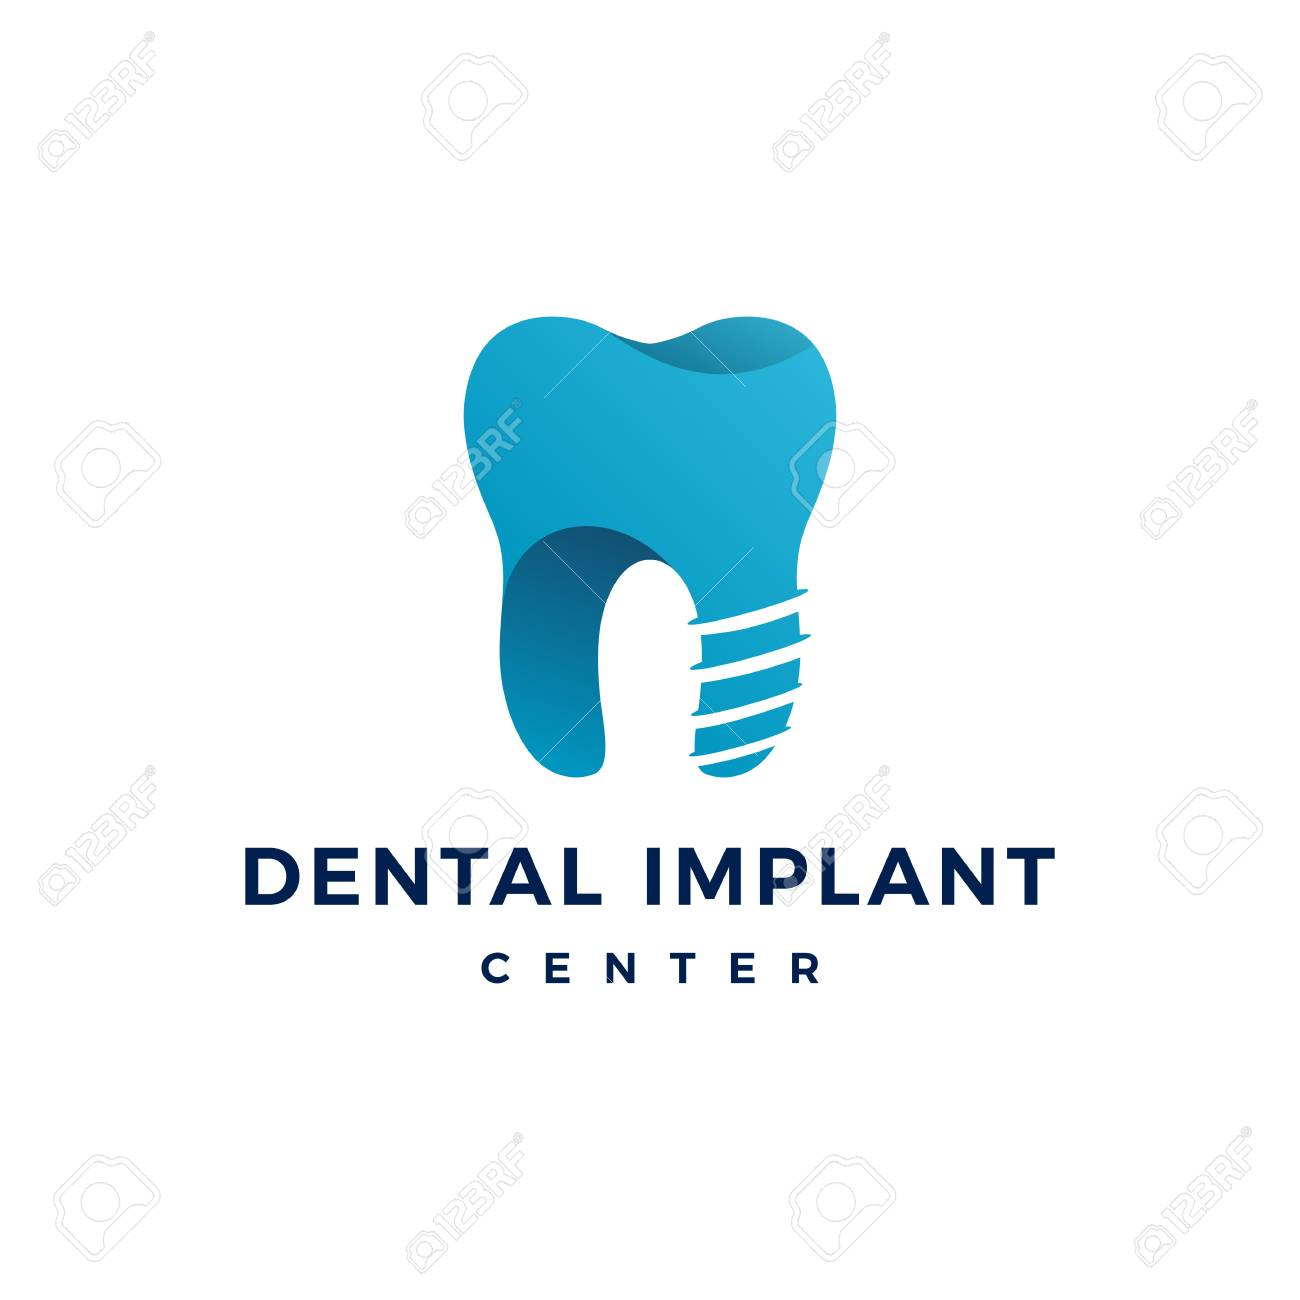 Dental Implant Logo Teeth Tooth Vector Icon Royalty Free Cliparts Vectors And Stock Illustration Image 107801141